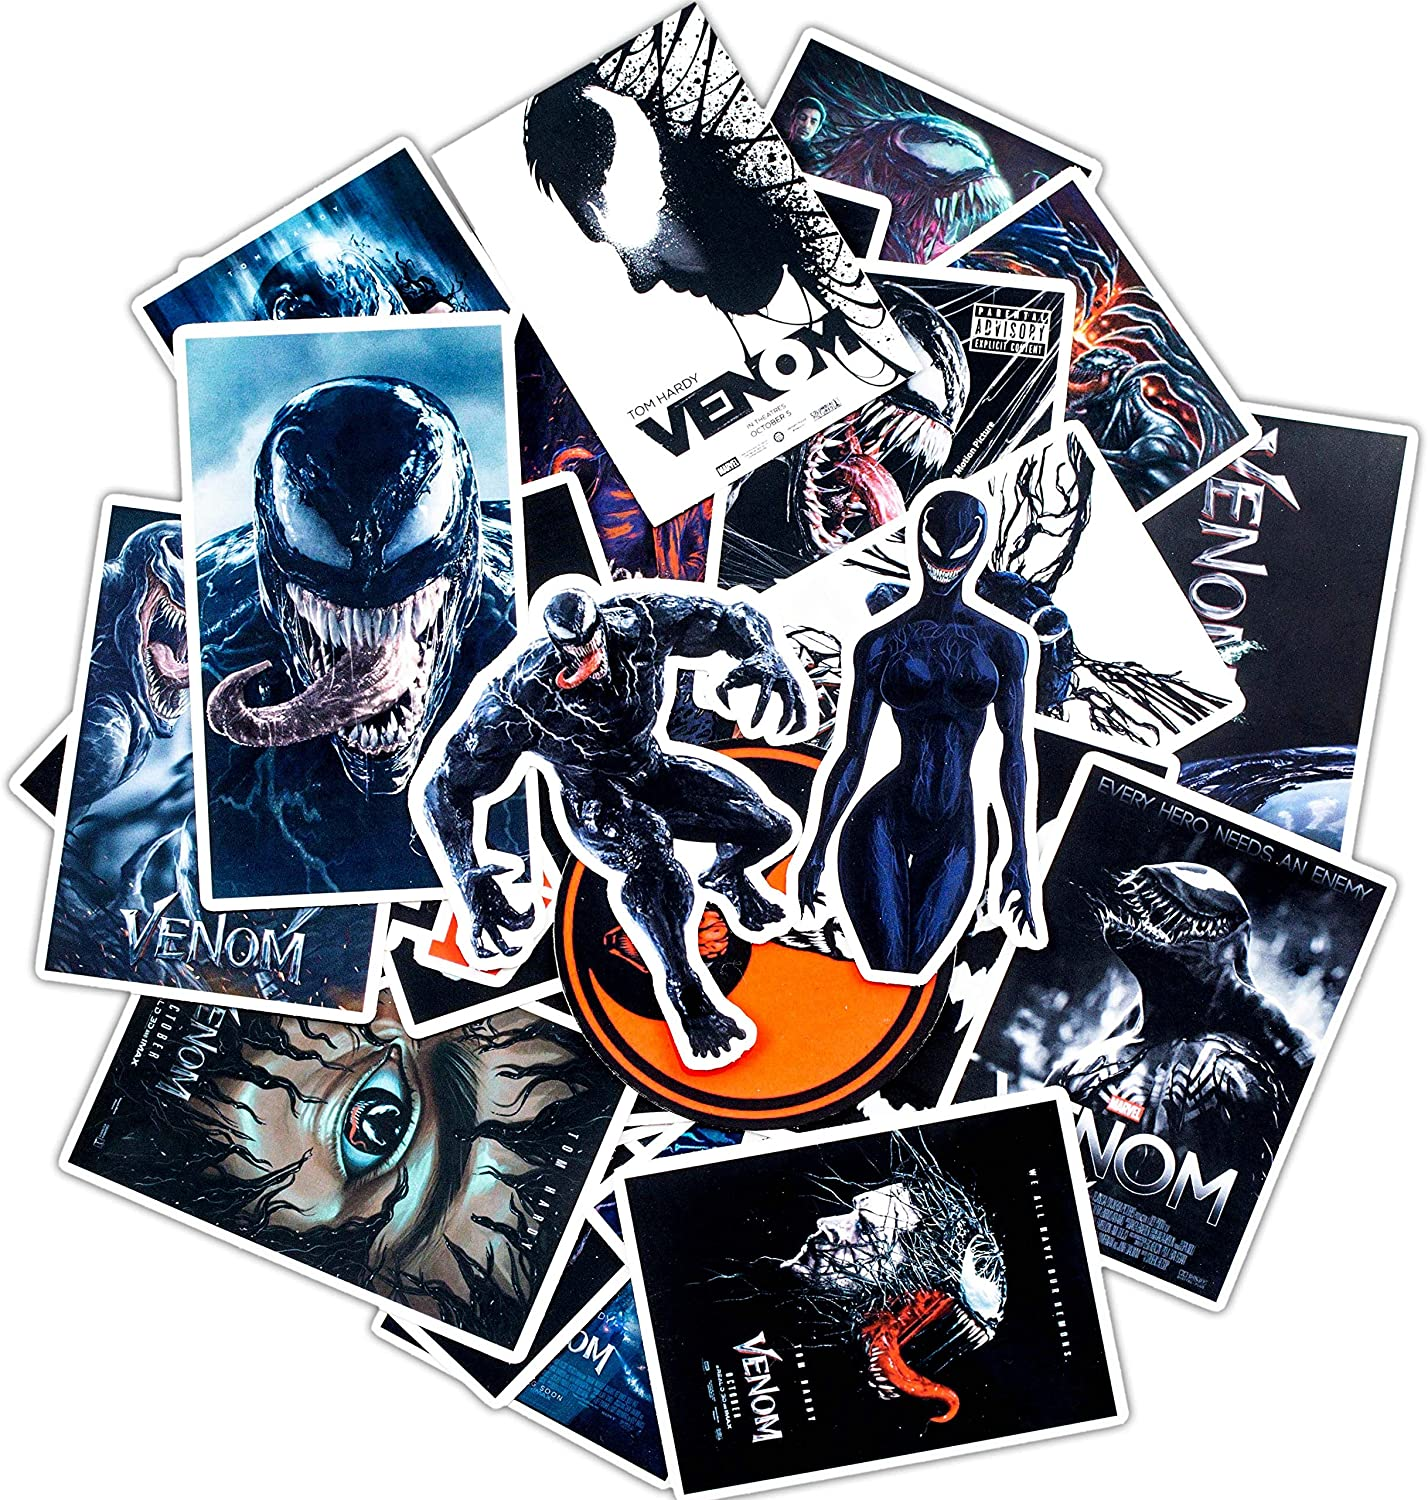 Venom Stickers for Water Bottles 30pcs,Poster Stickers Decals for Laptop Cups Tumbler Bike Car Guitar Motorcycle Bumper Luggage Skateboard(Venom)